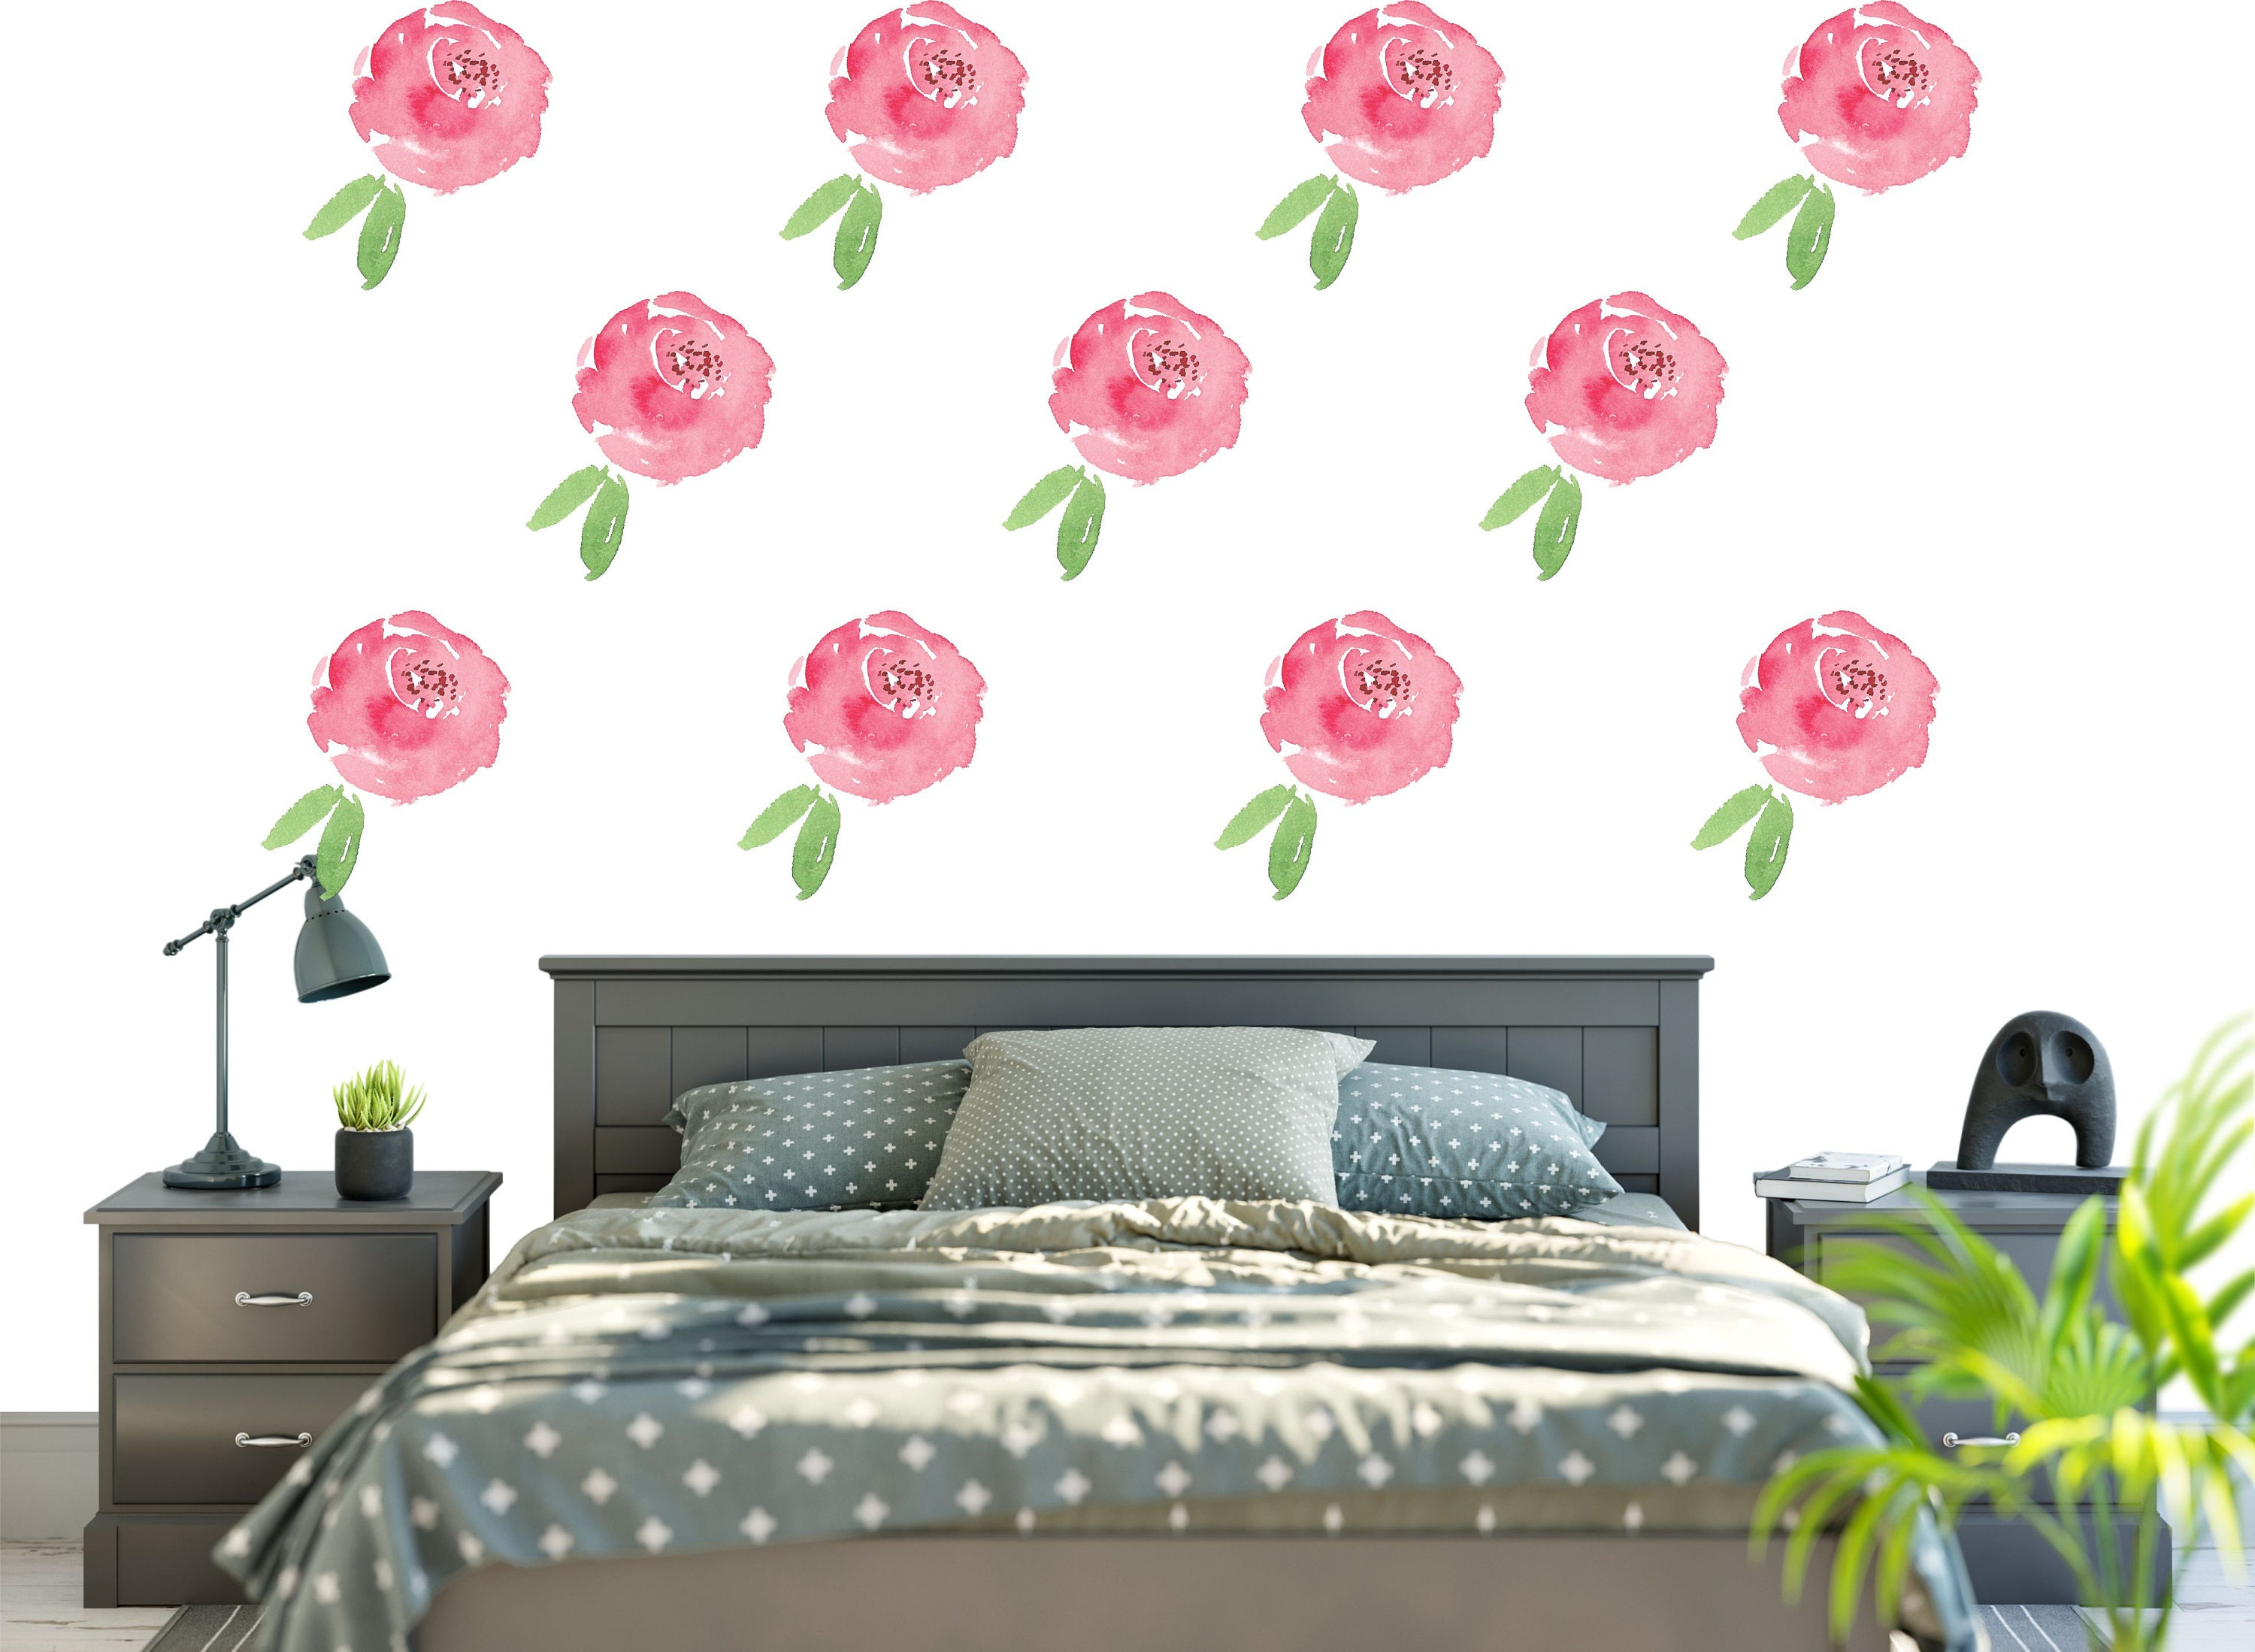 Renters floral wallpaper removable and reusable fabric Floral peel and stick wallpaper